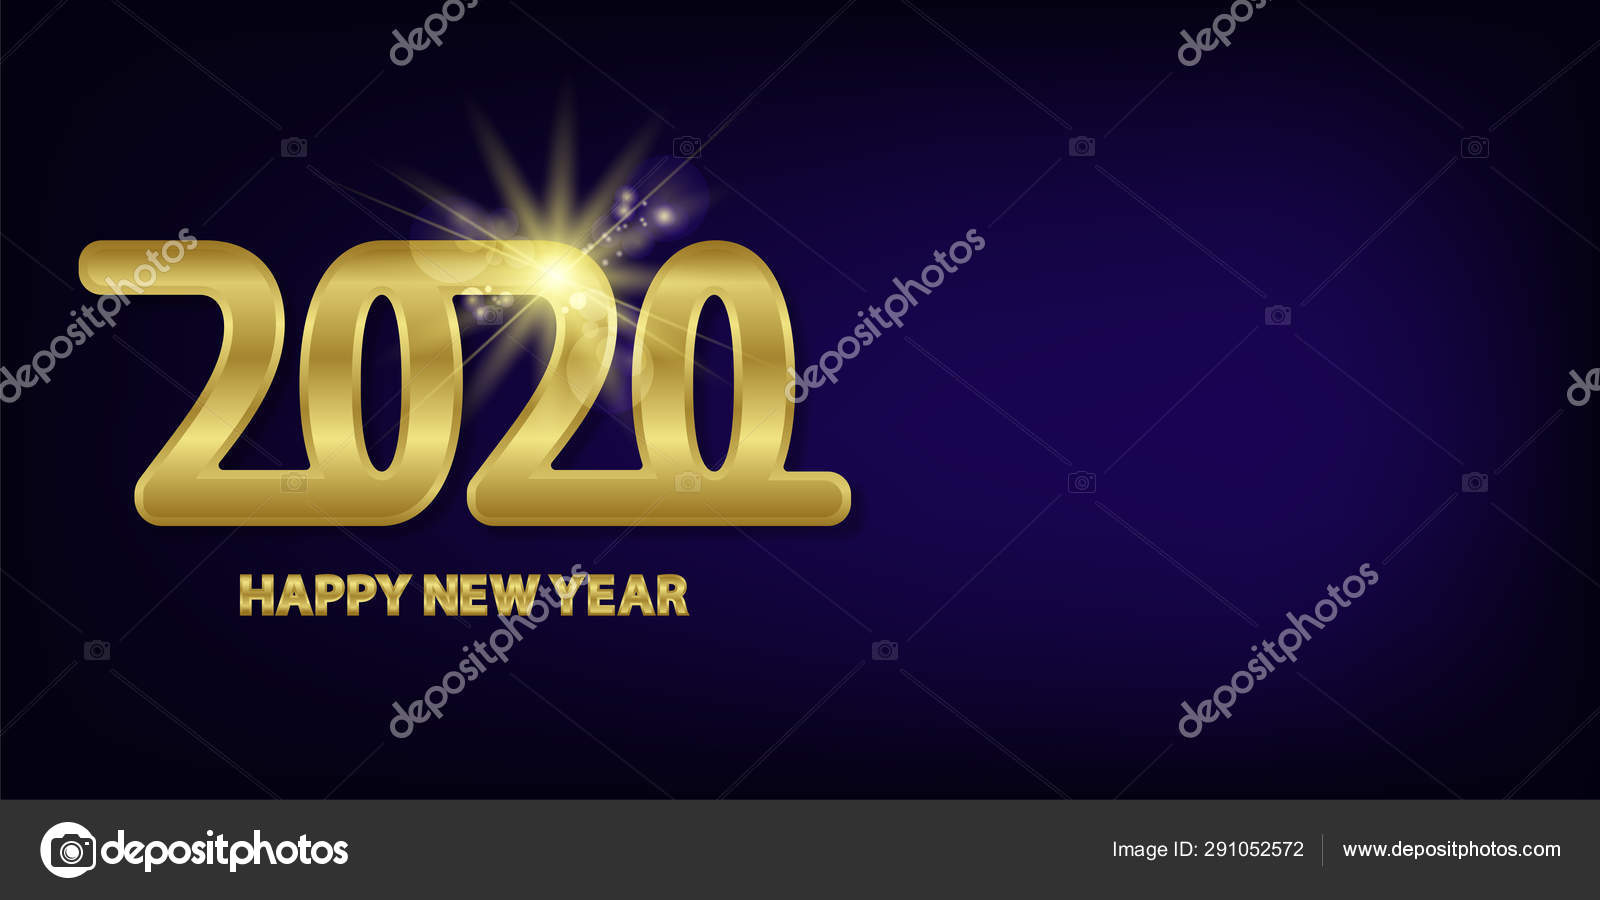 Happy new year 2020 design  Gold card on golden background